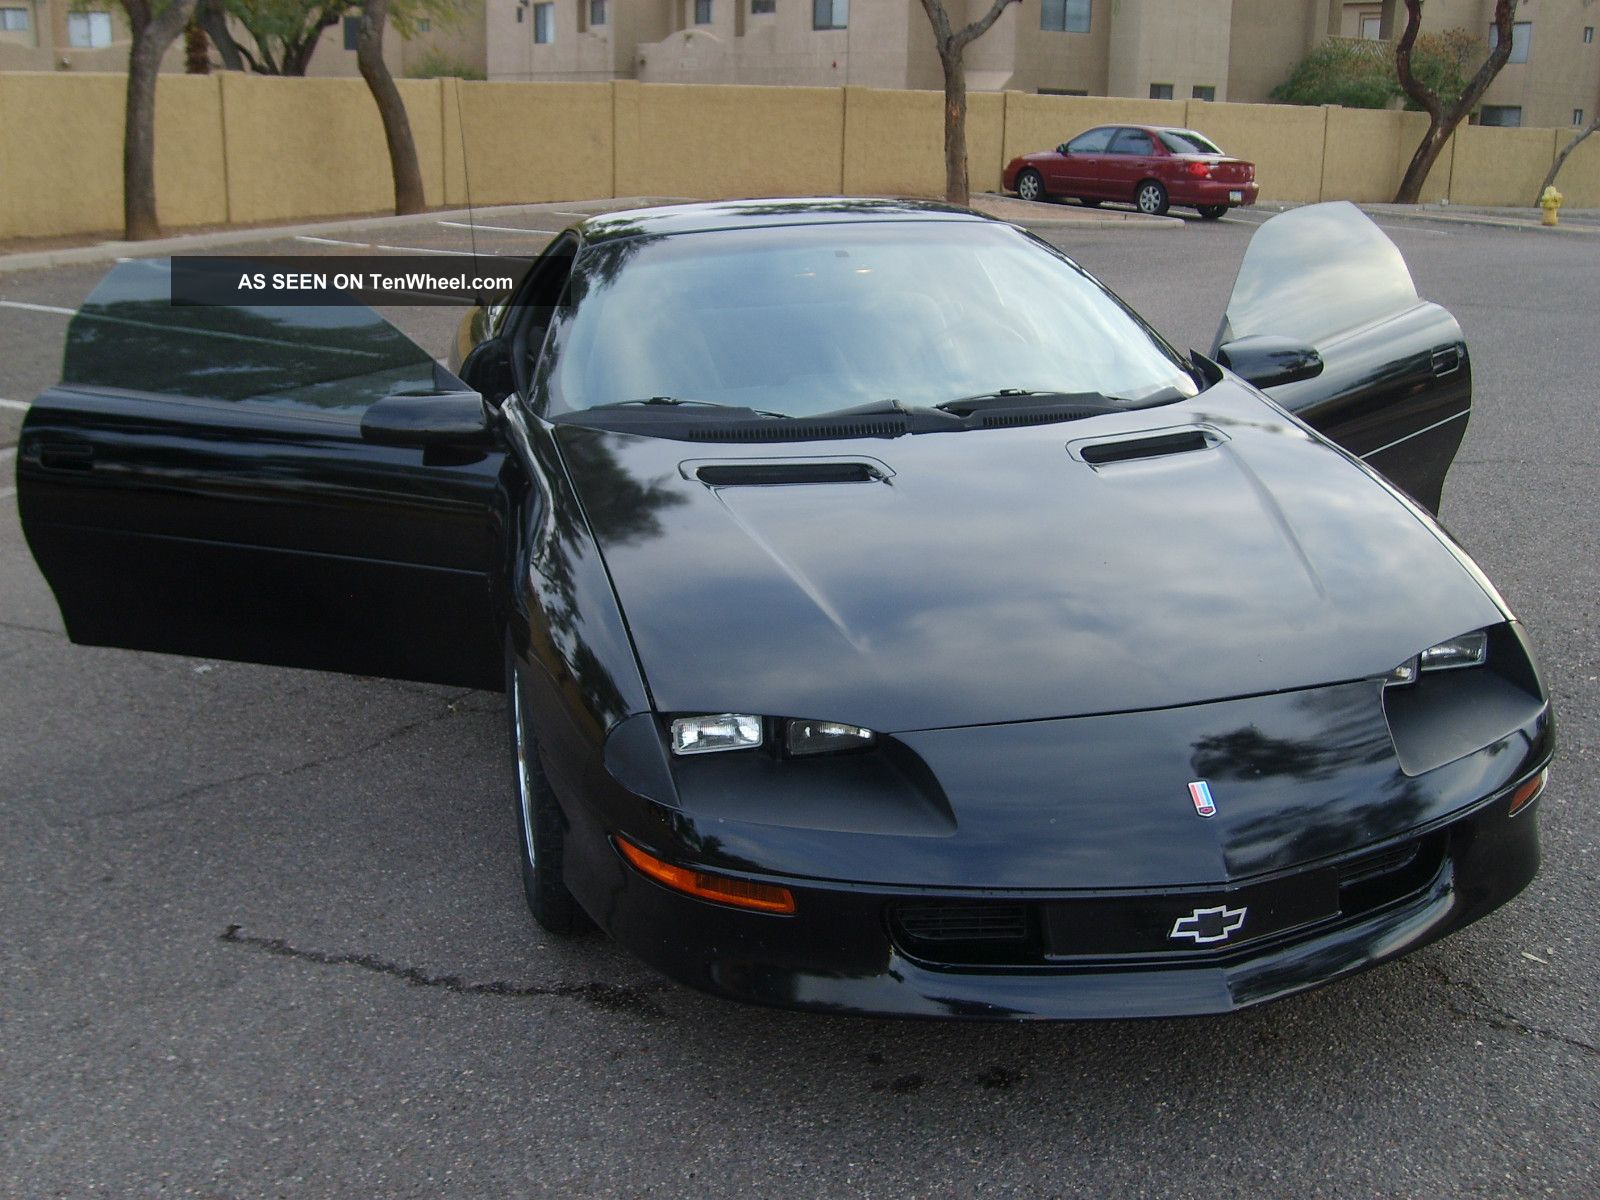 1997 Chevrolet Camaro Z28 1le 1 Of 45 Built In 1997 Very Nr Camaro photo